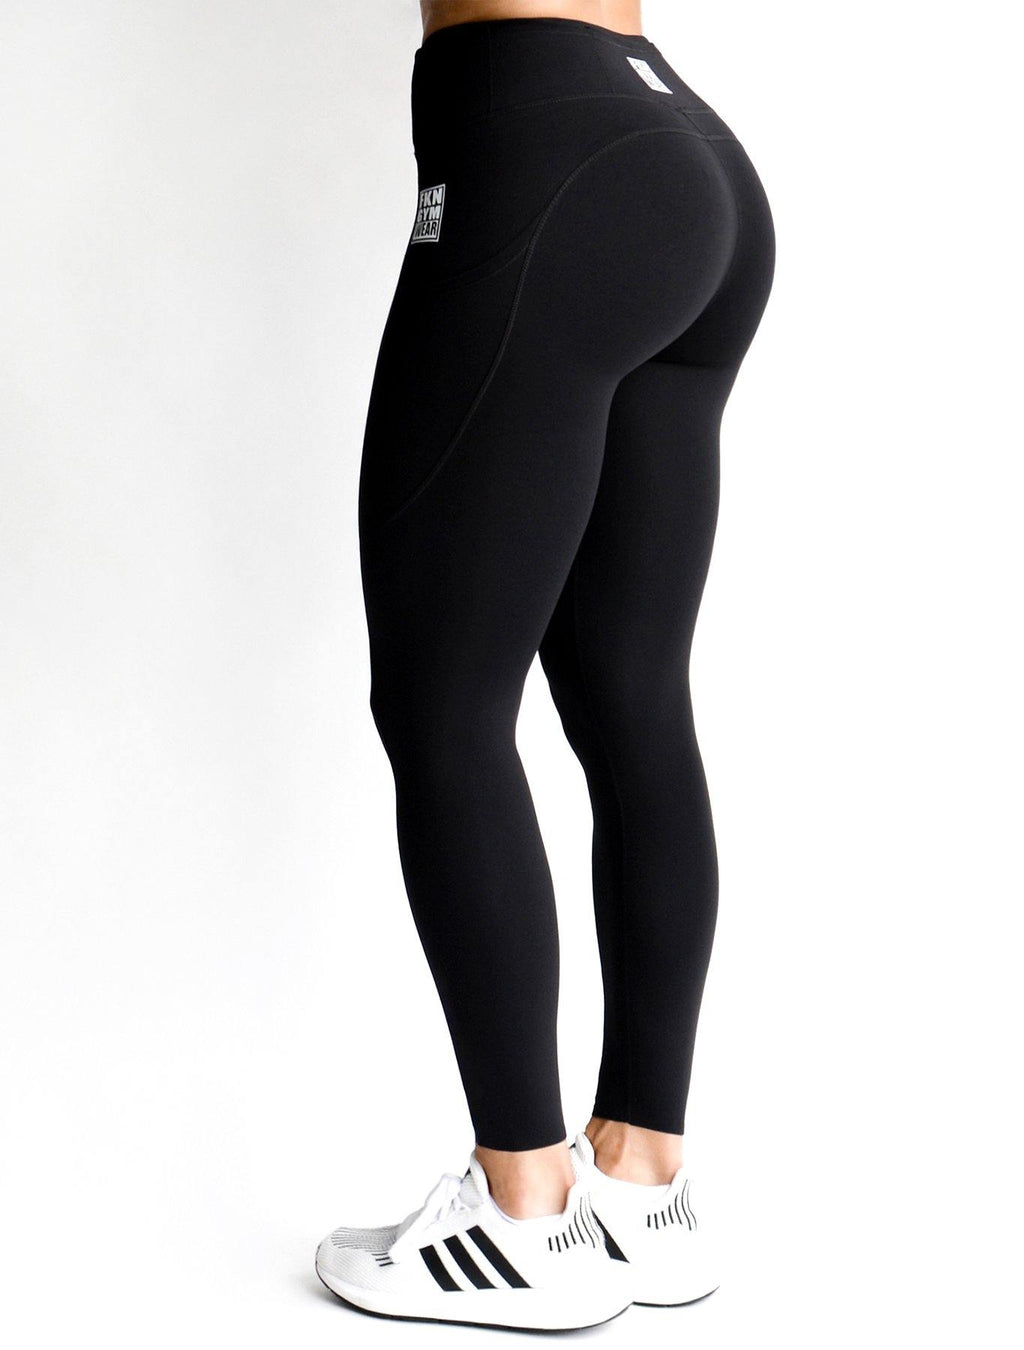 A2G | Original Gym Leggings